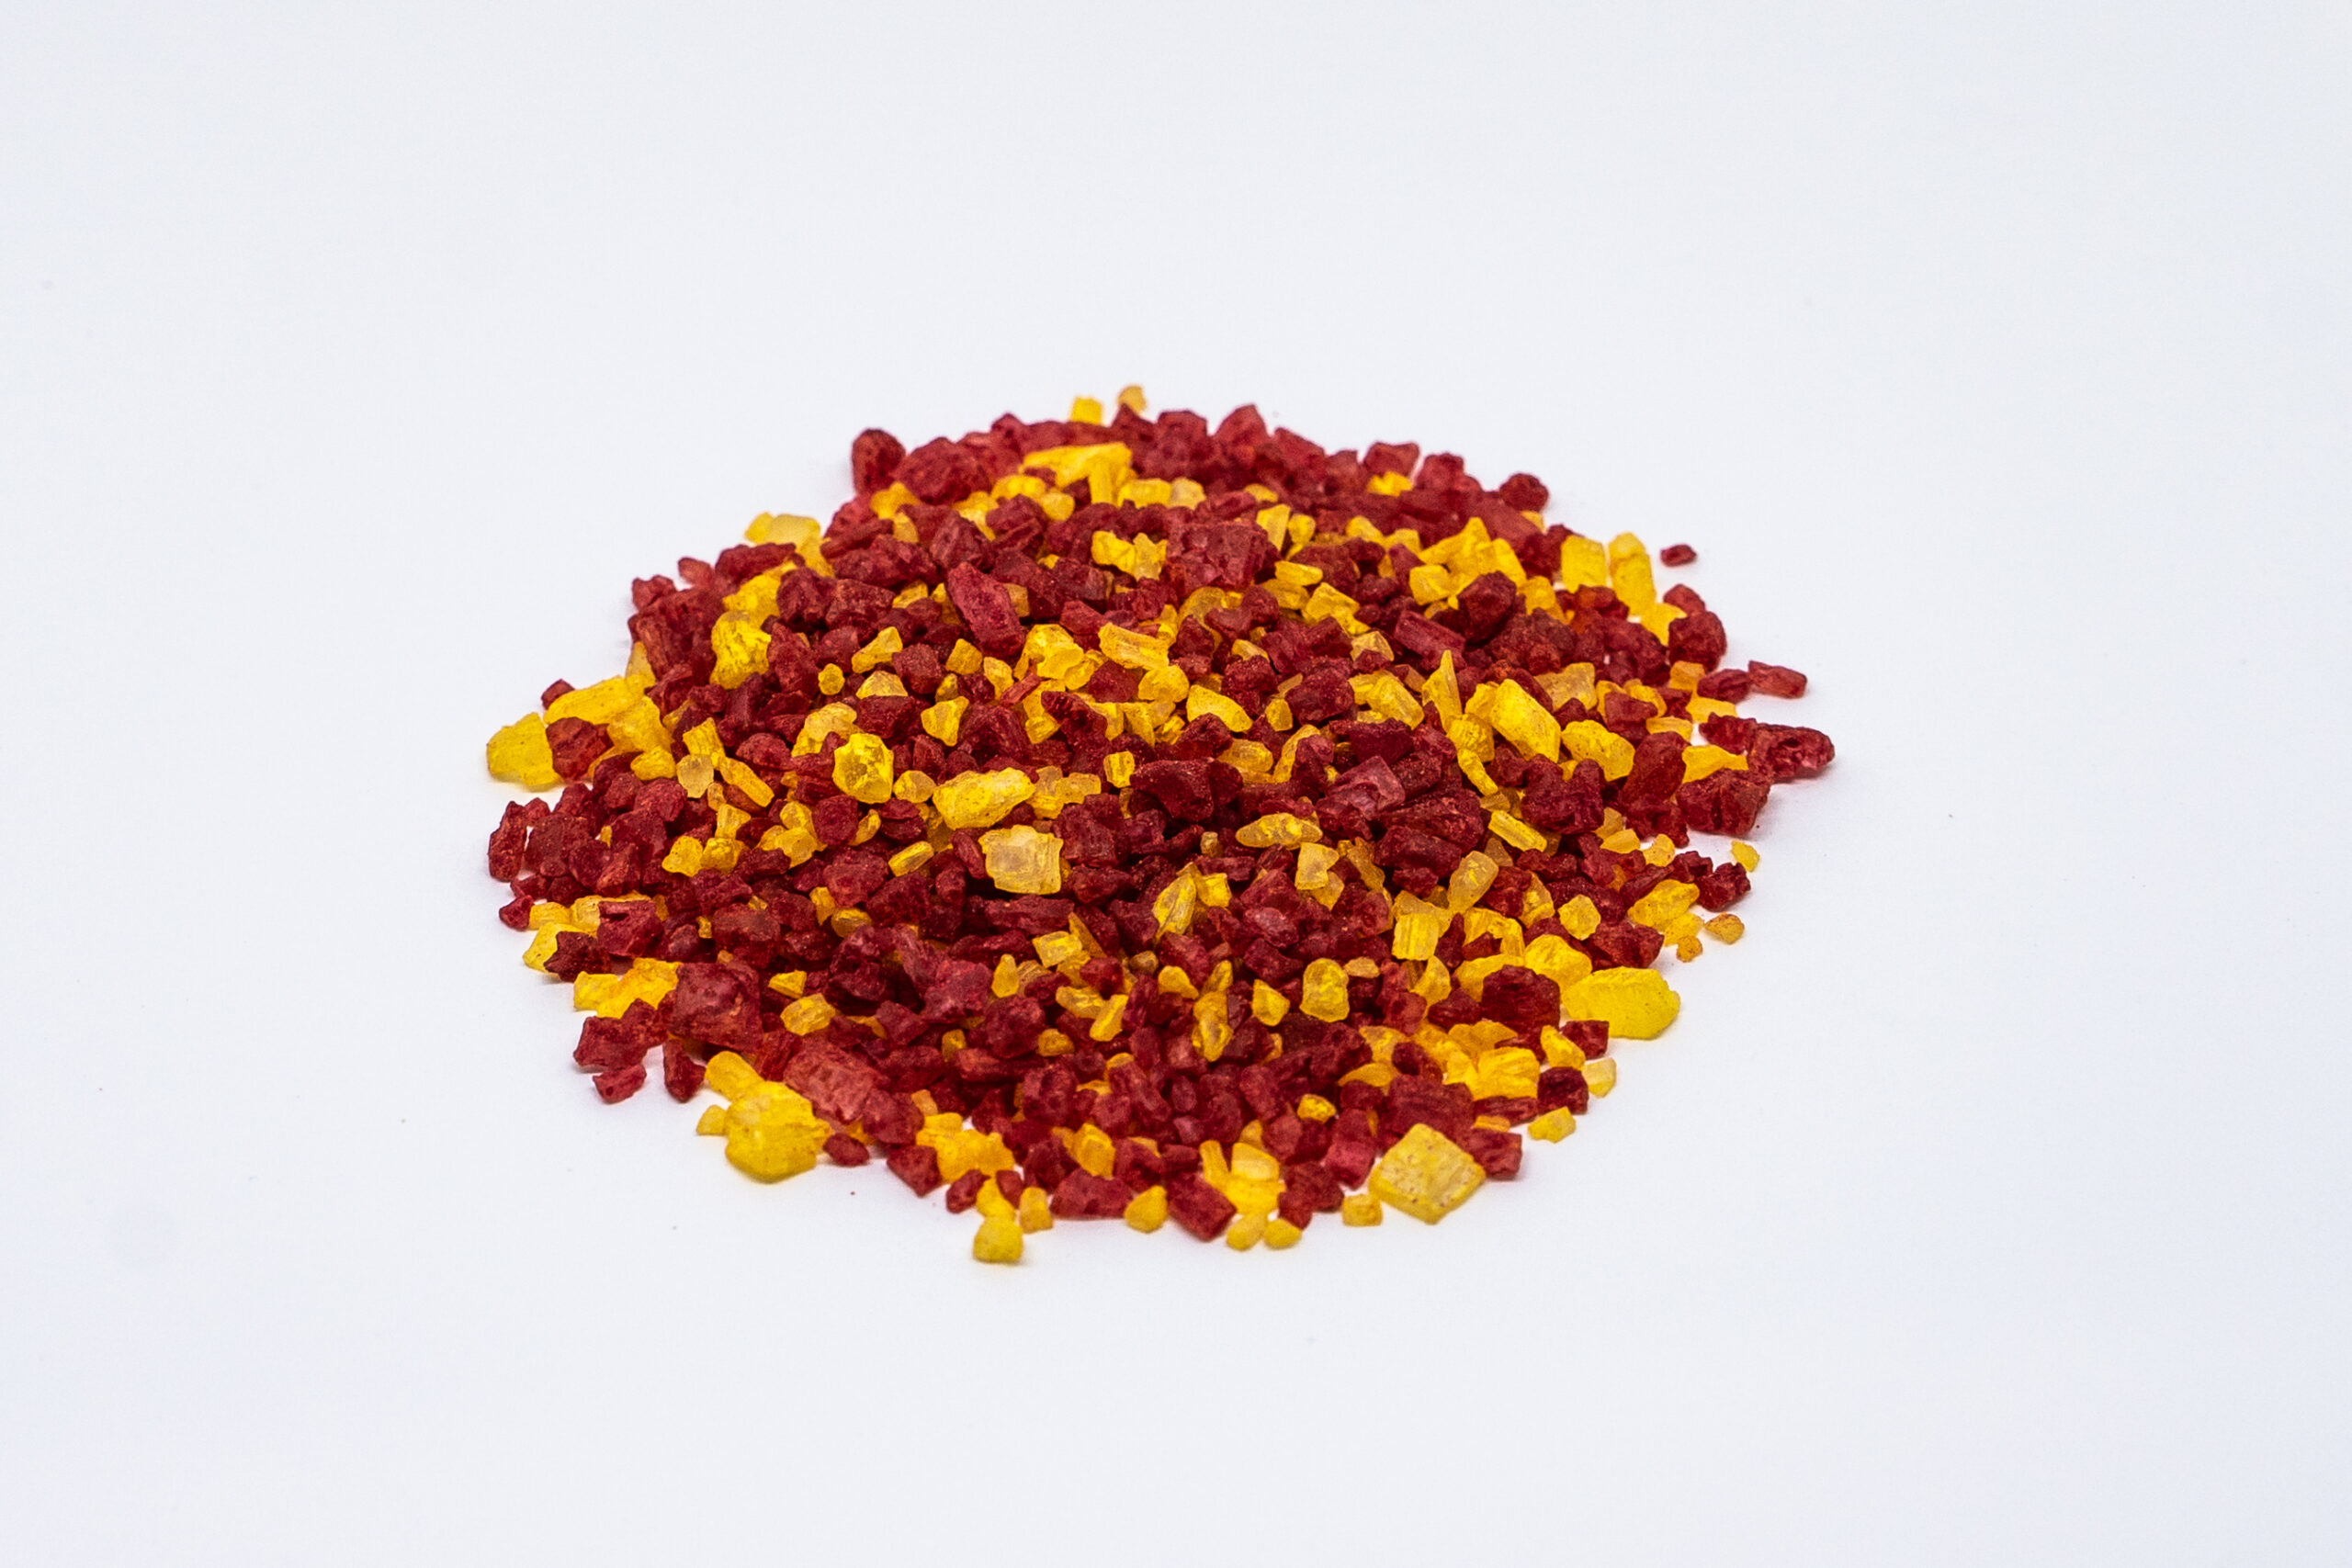 Red and Yellow salt